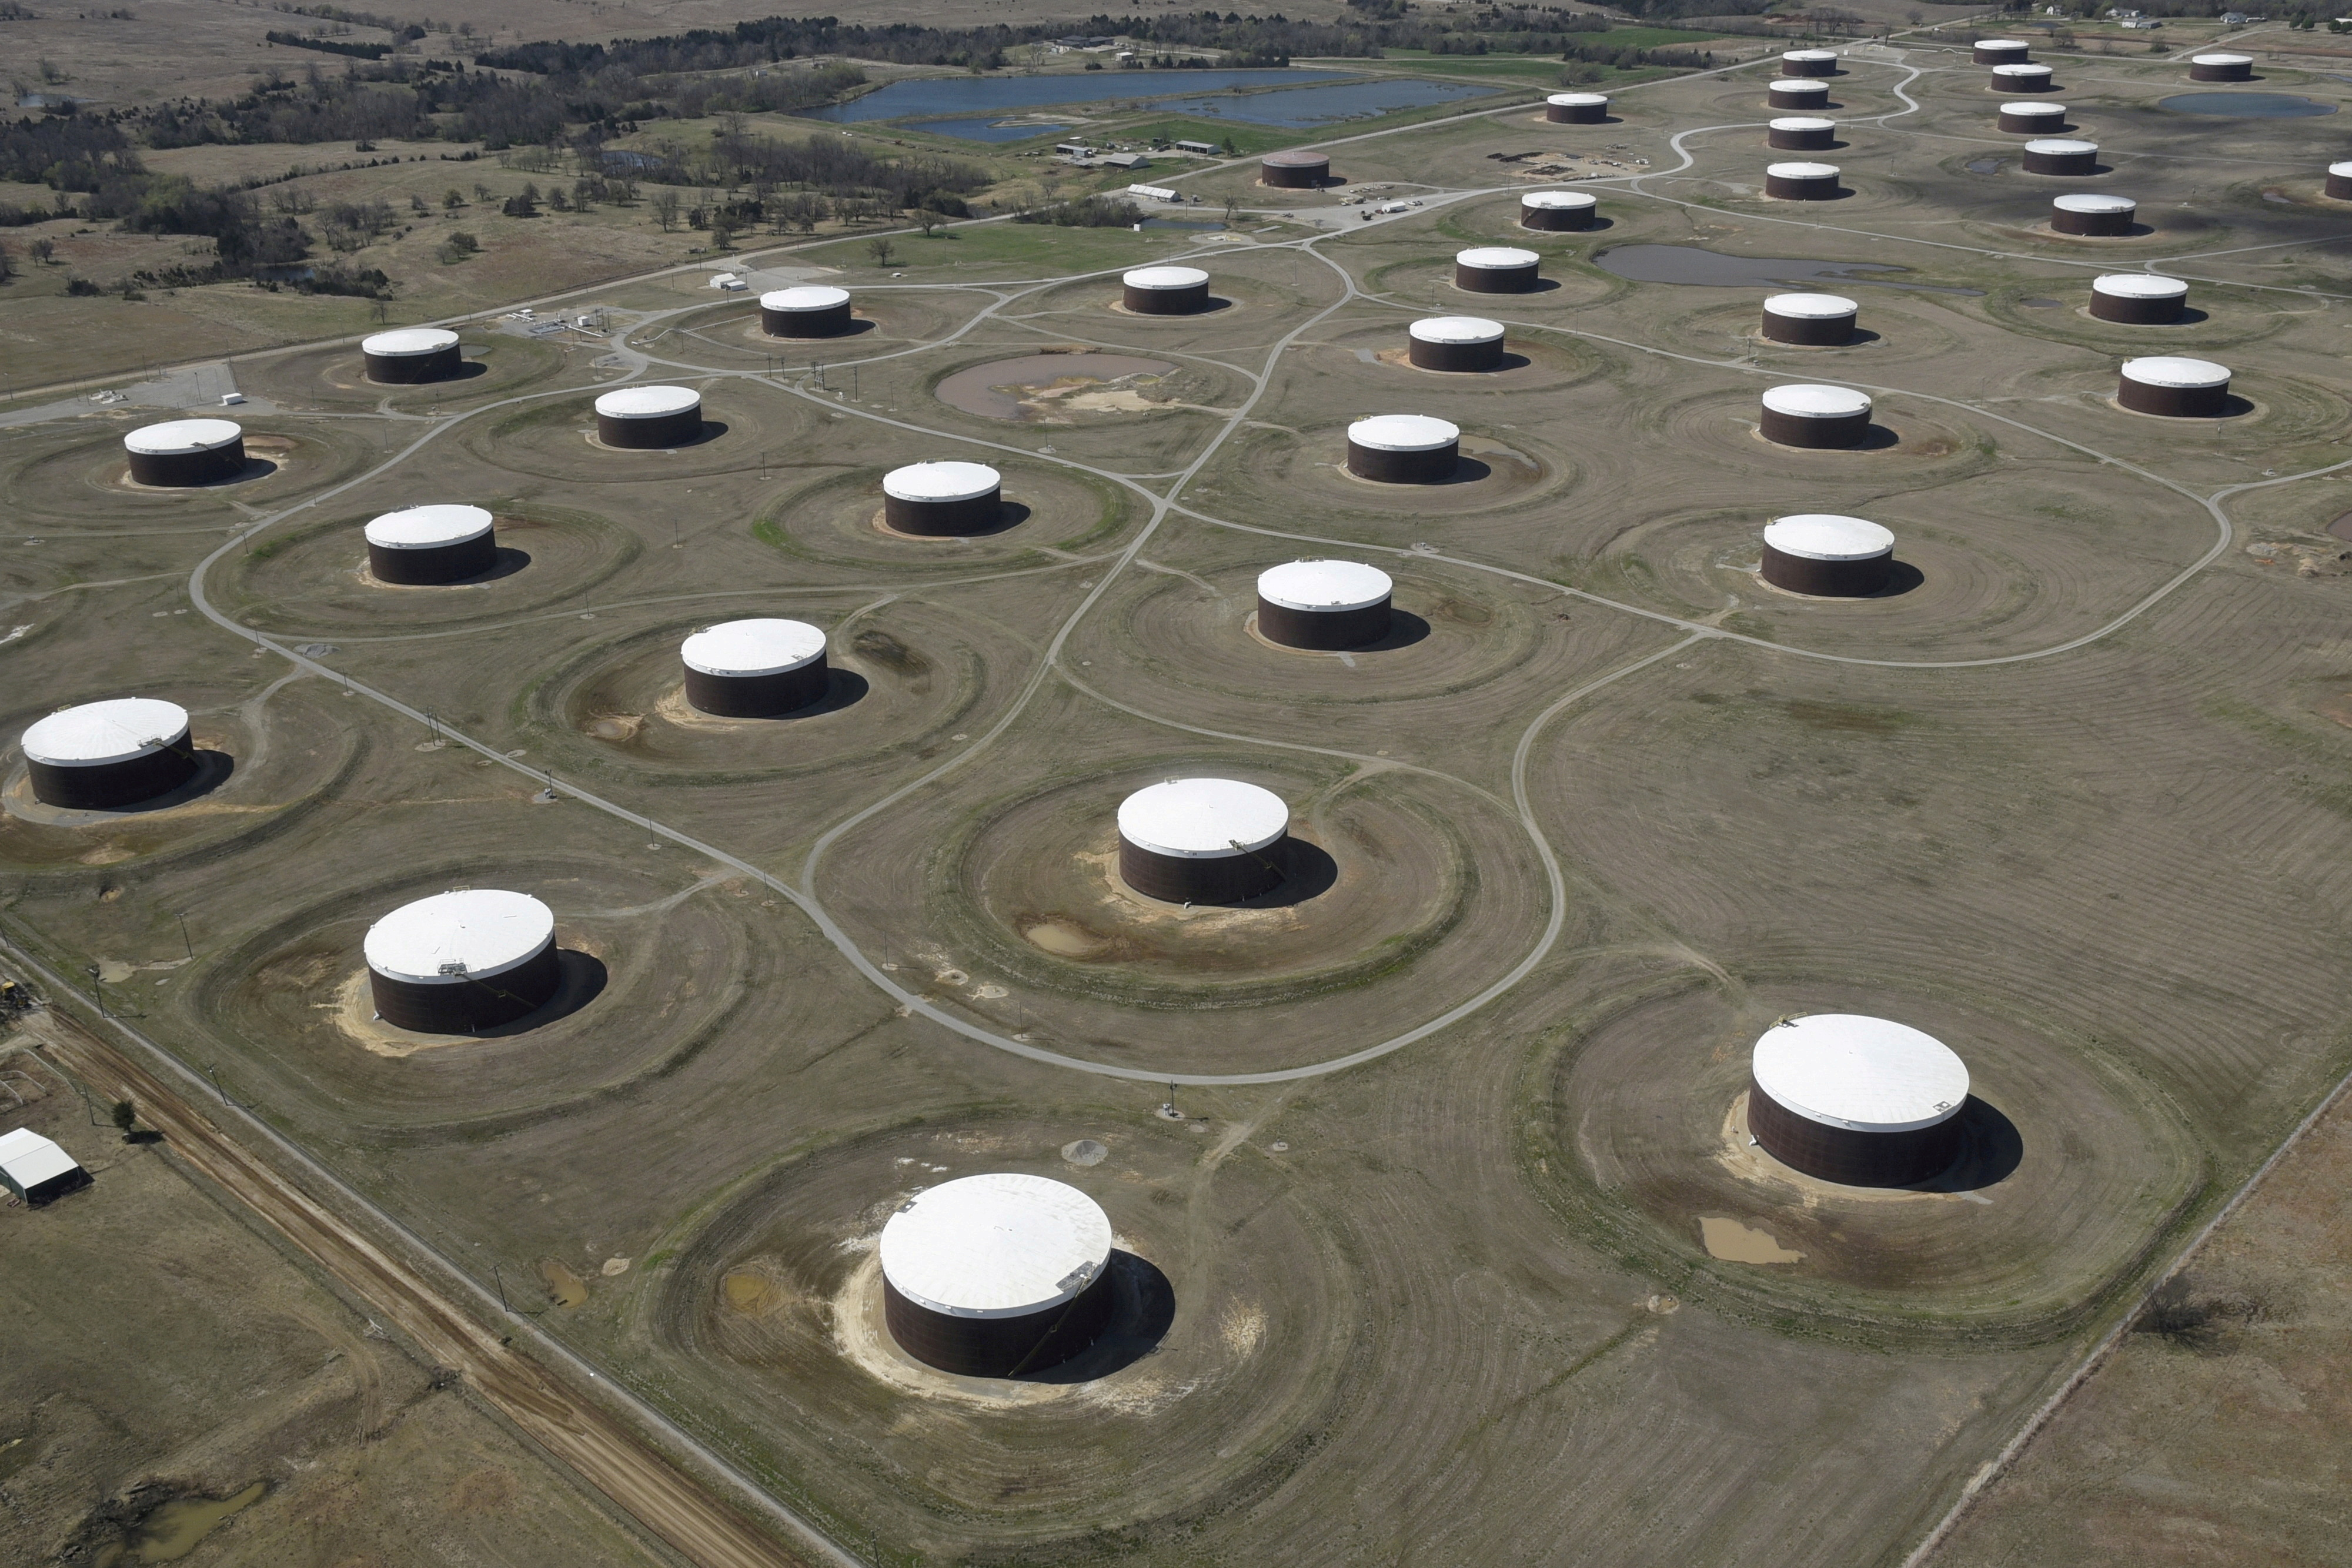 Crude oil storage tanks are seen from above at the Cushing oil hub, in Cushing, Oklahoma, U.S., March 24, 2016. REUTERS/Nick Oxford